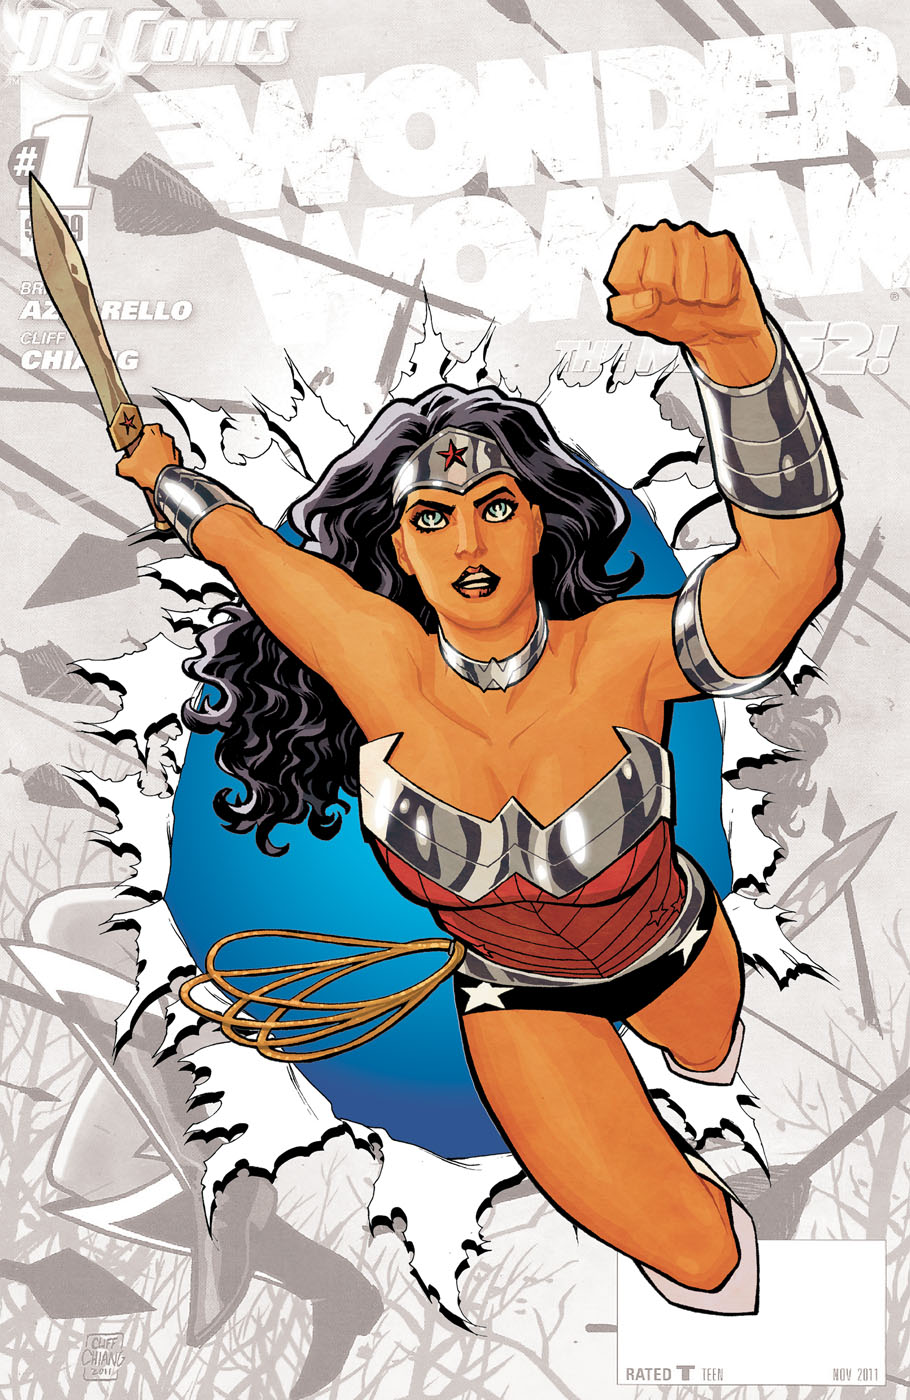 wonderwoman0cover dp amateur sex, group hardcore sex thumbnail, lesbian masterbation stories, ...